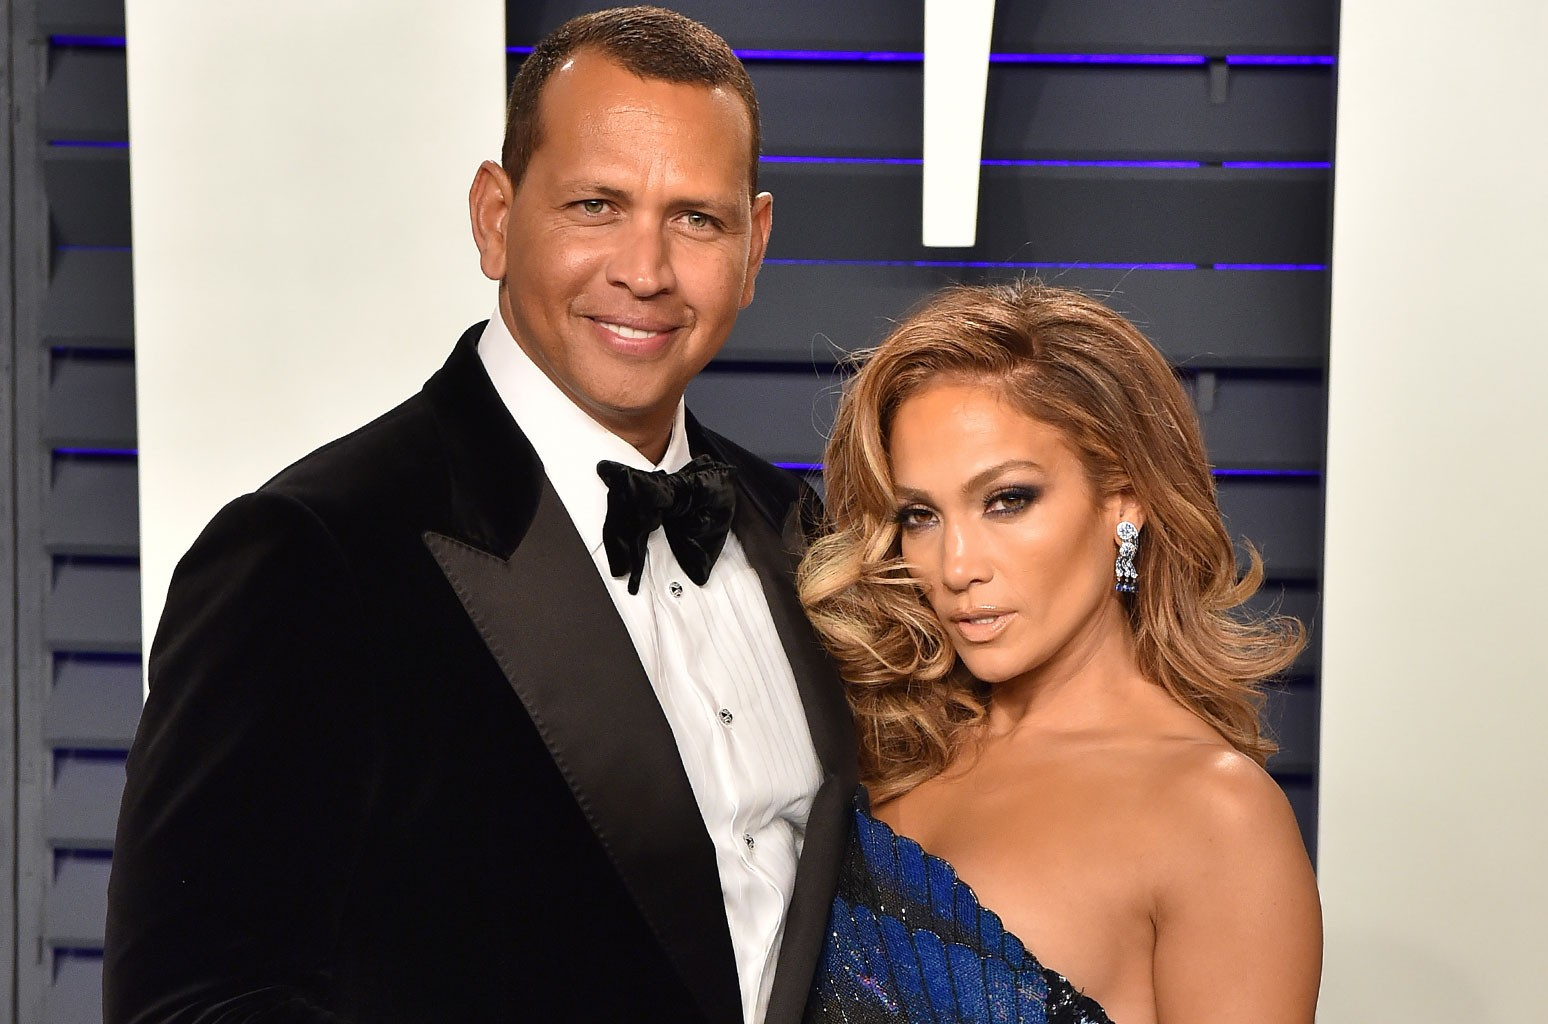 alex-rodriguez-claims-he-and-jennifer-lopez-are-still-together-after-breakup-reports